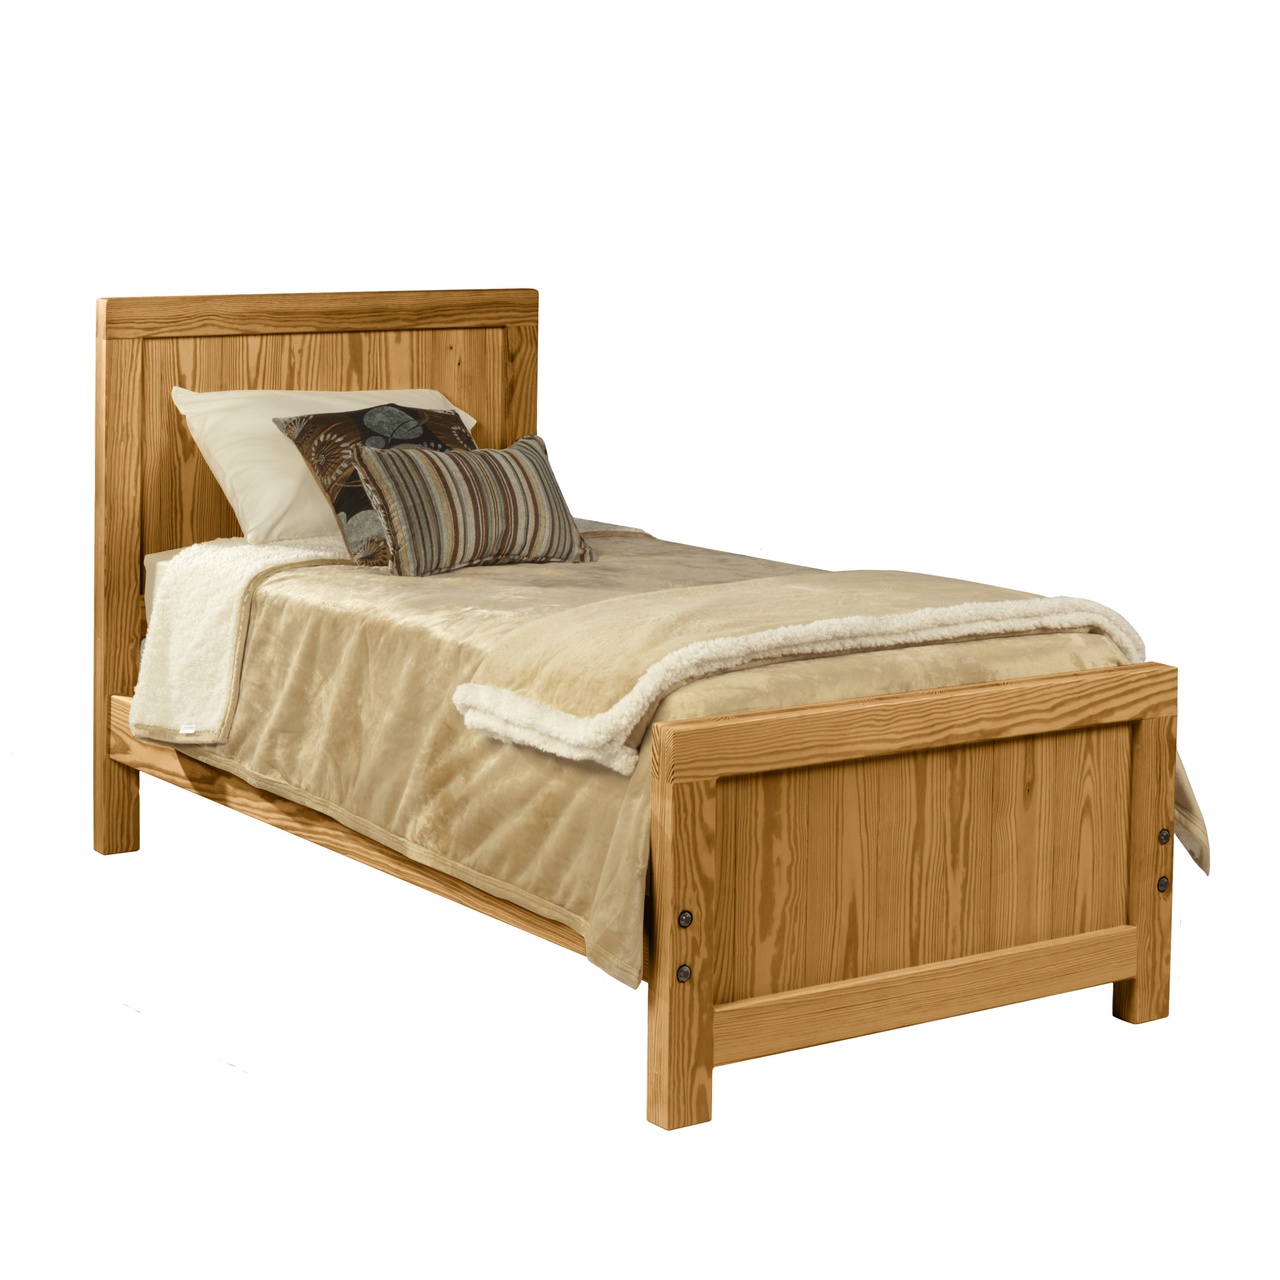 Classic Twin Bed This End Up Furniture Co